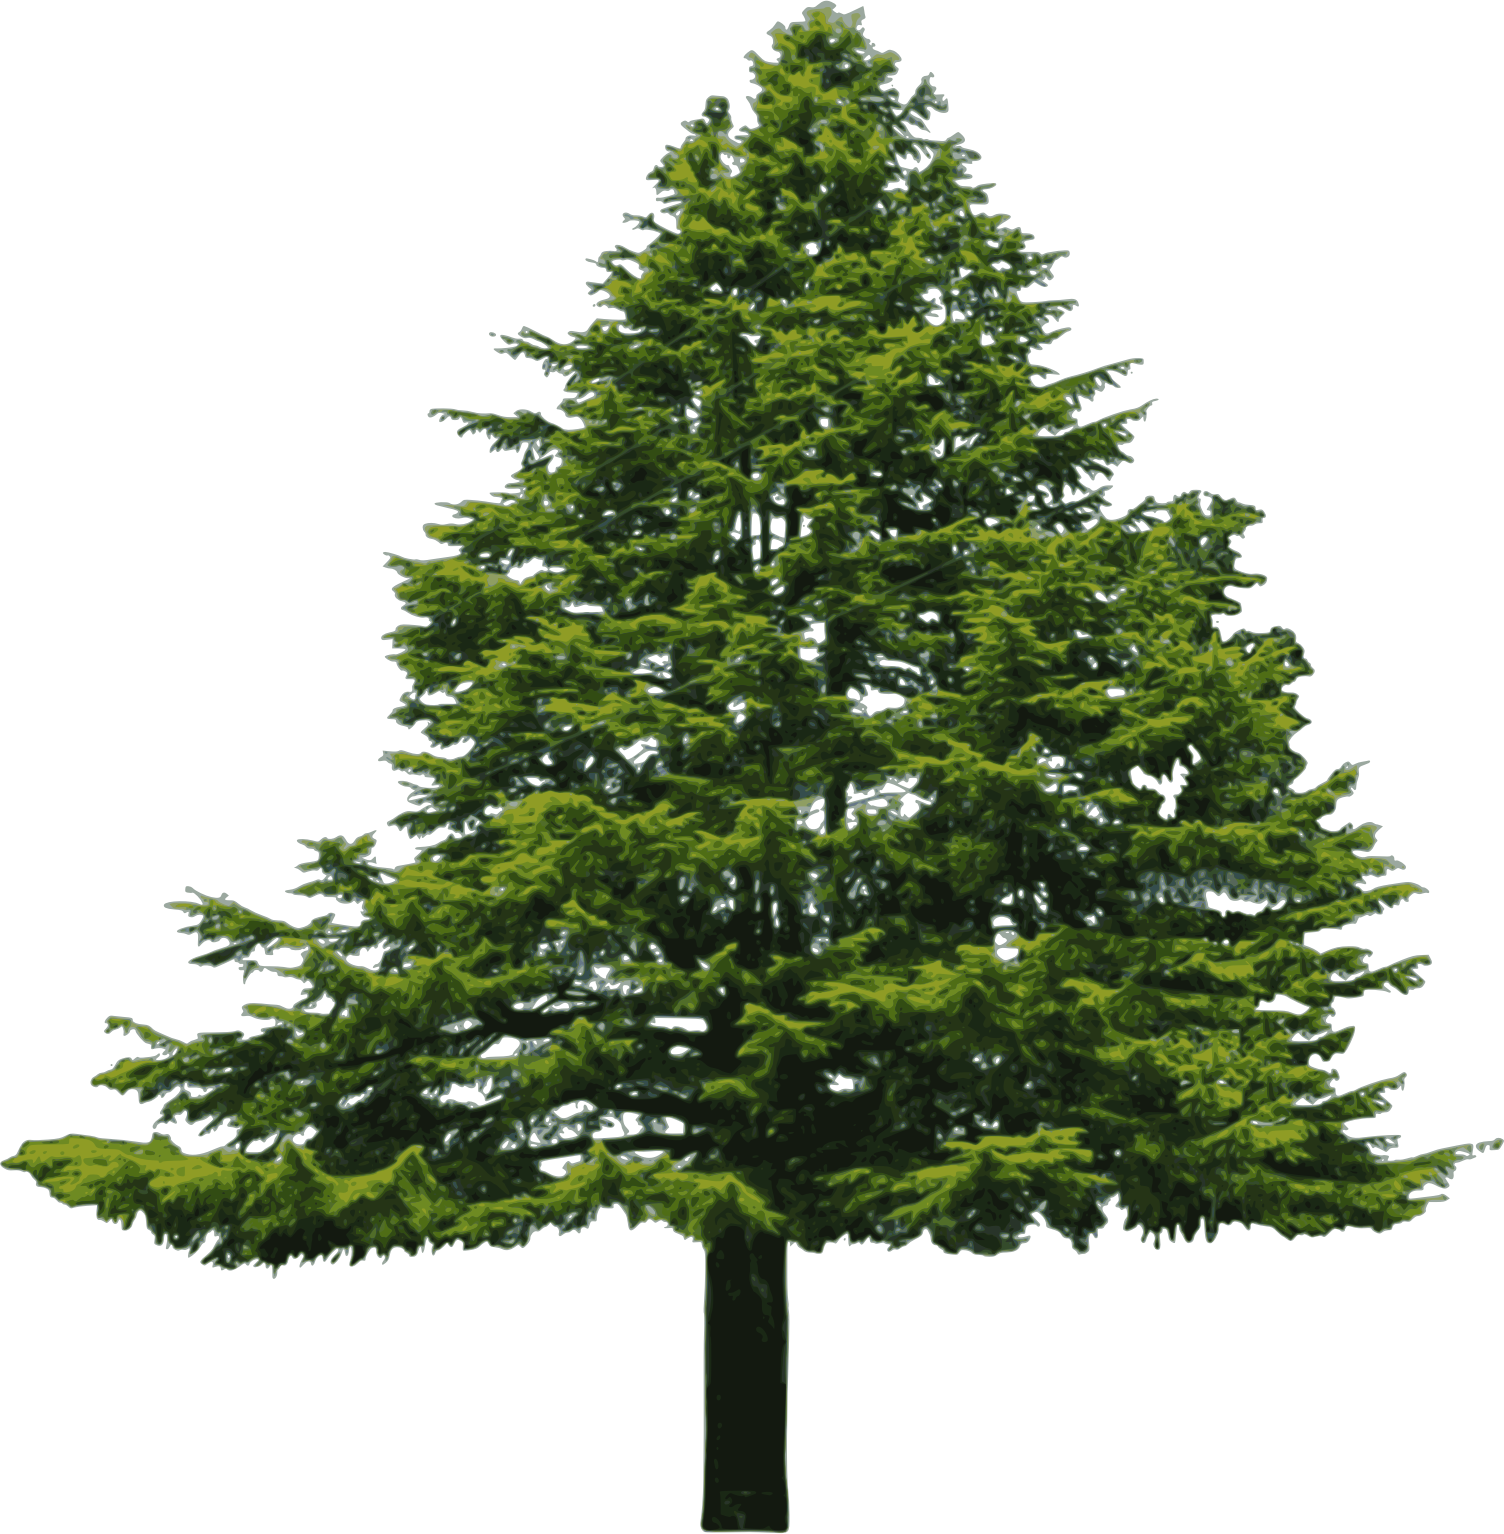 Forest pine trees png. Wide tree transparent images